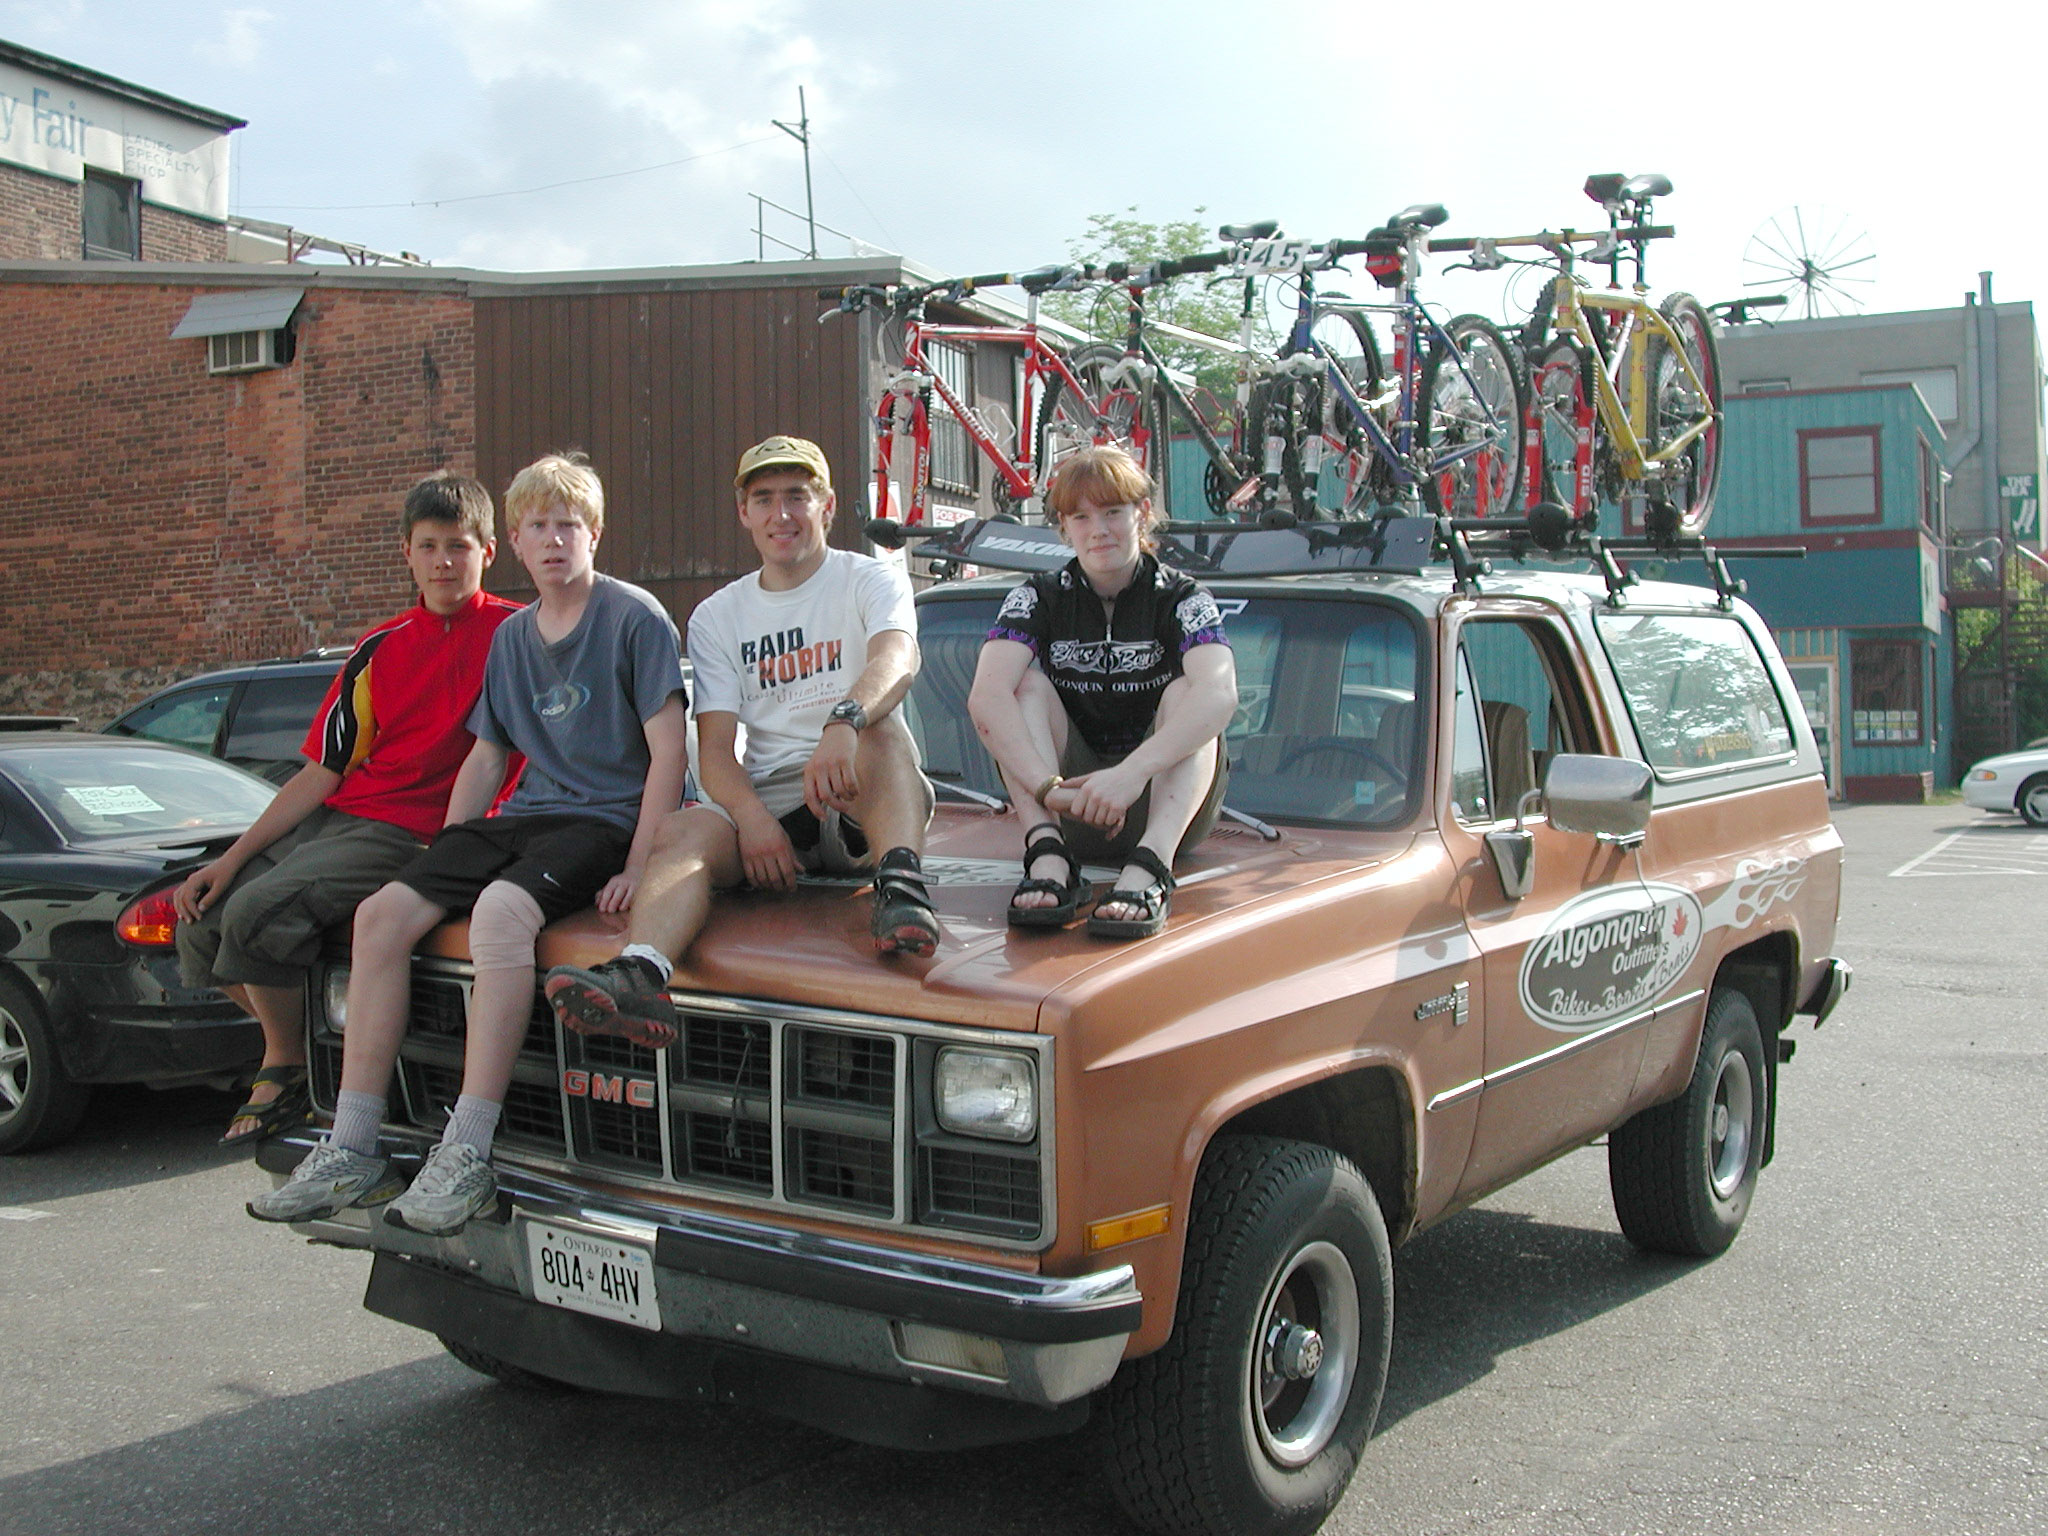 Algonquin Outfitters Bike Night